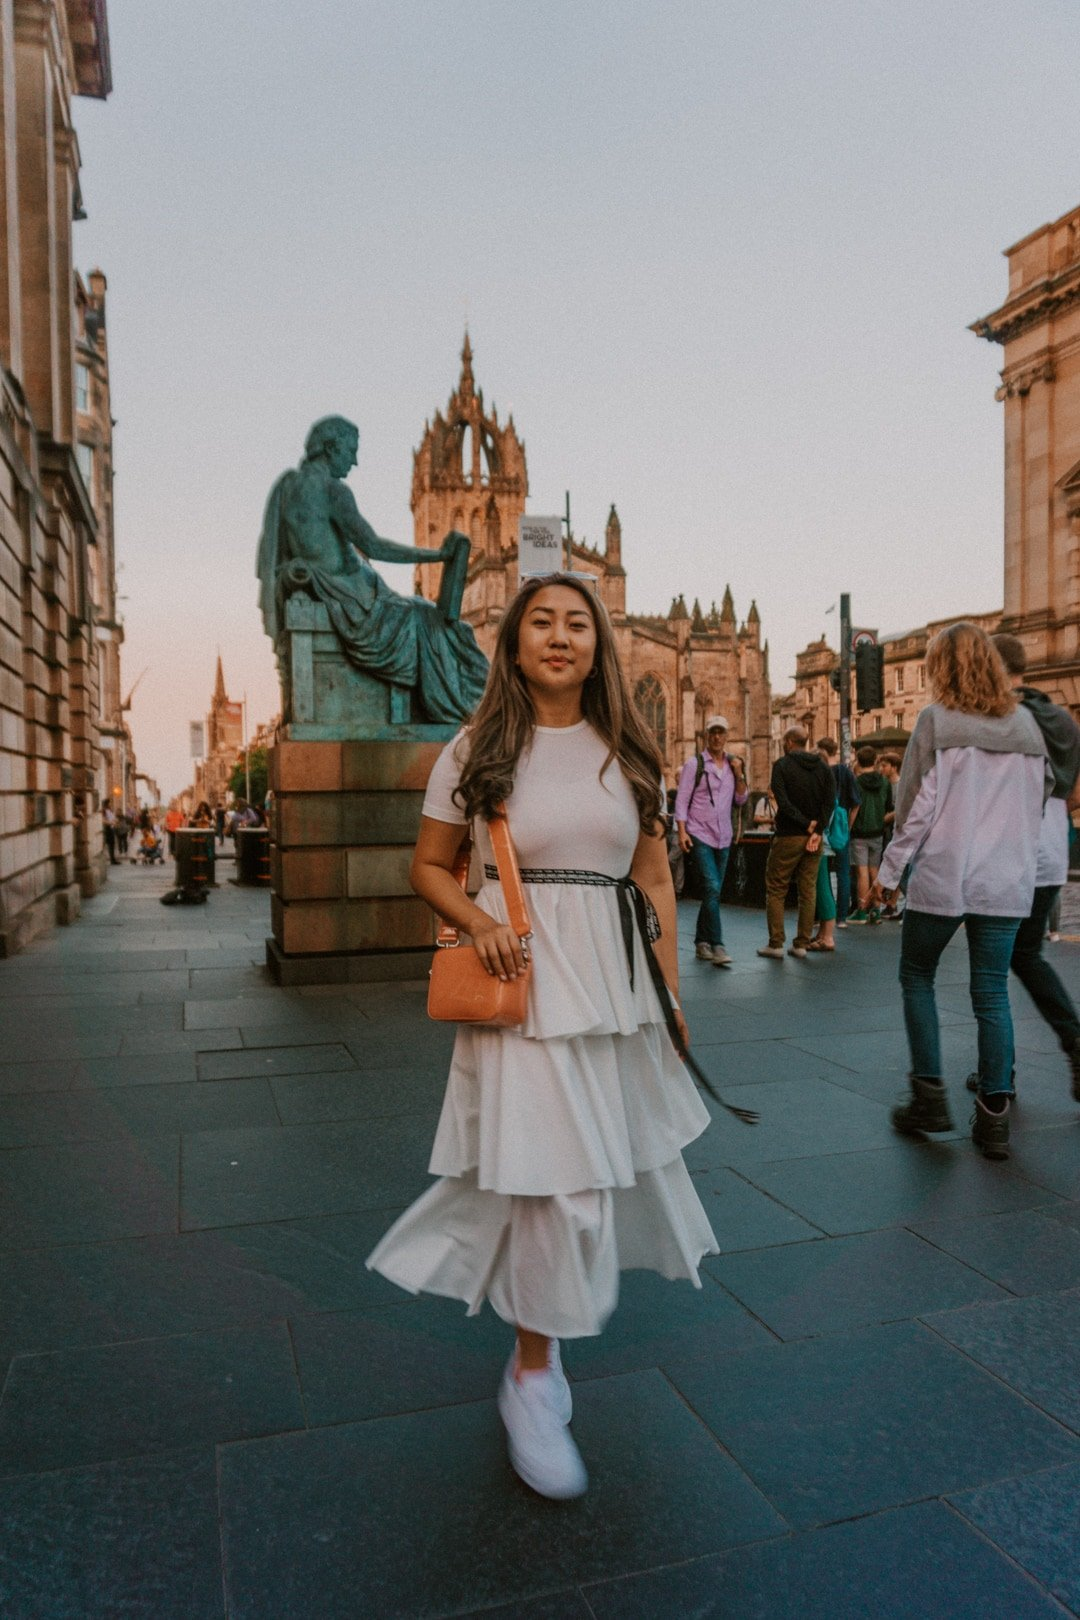 Old Town, one of the most Instagrammable places in Edinburgh